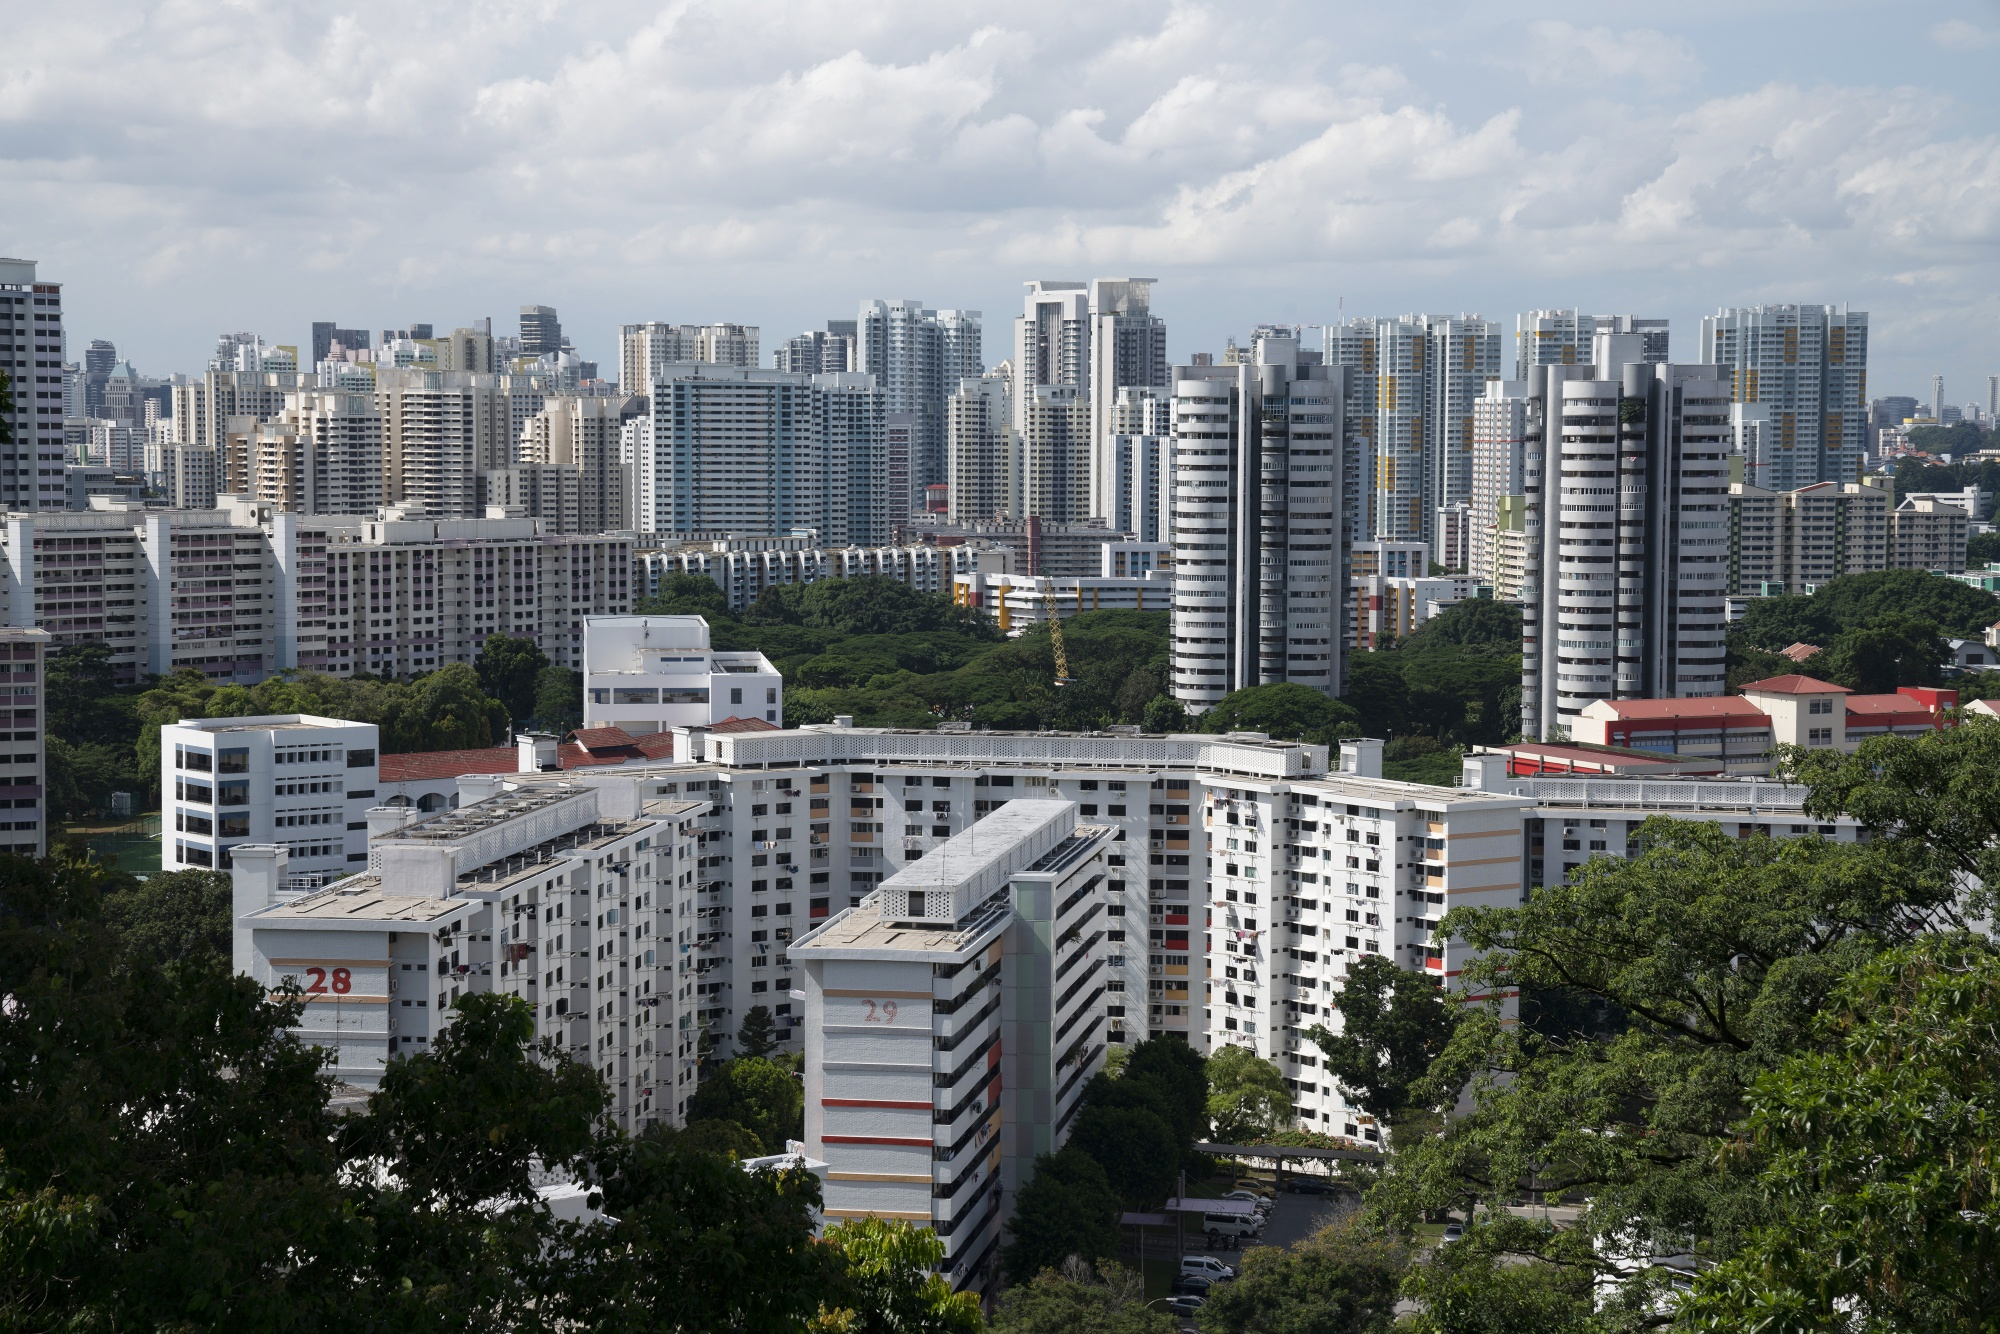 Views of Singapore as Prime Minister says Covid-19 to 'Weigh Heavily' on City-State's Economy